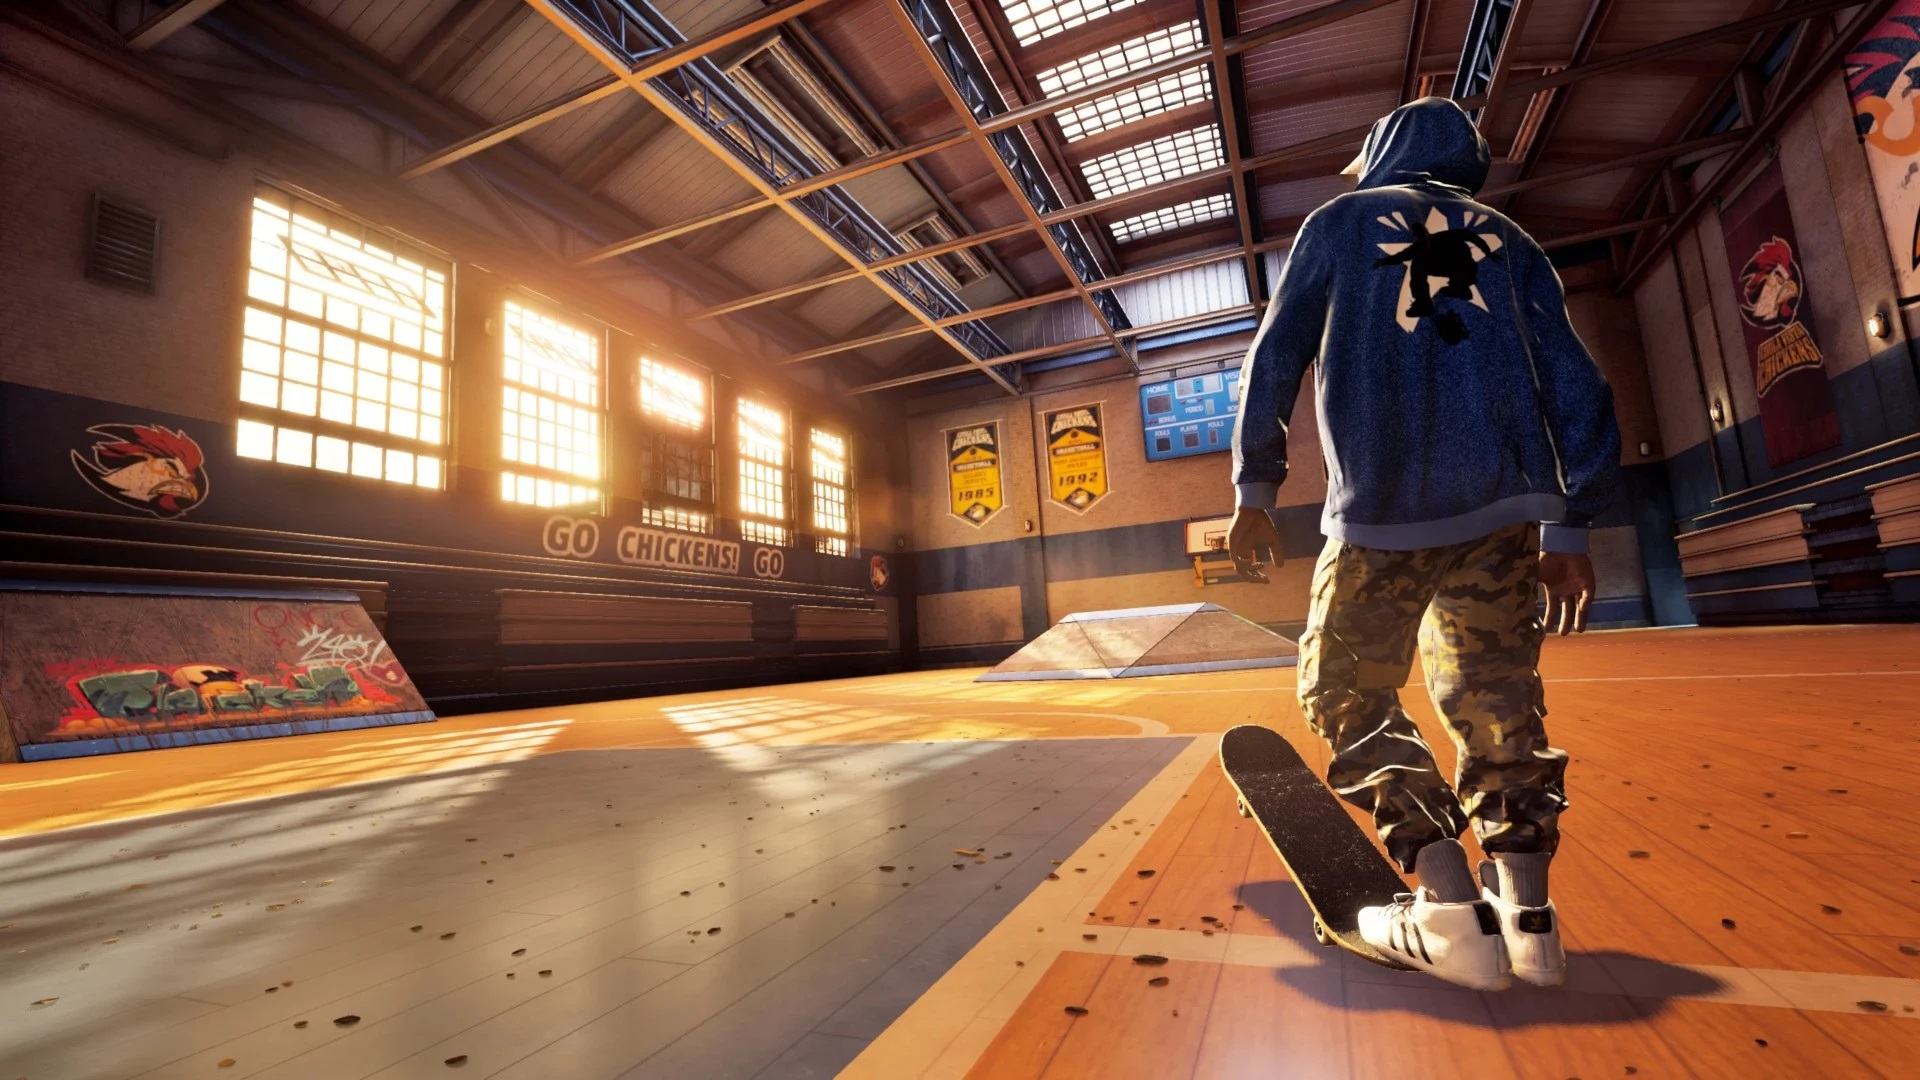 Best Ps4 games of 2020 - Tony Hawk's Pro Skater 1 + 2